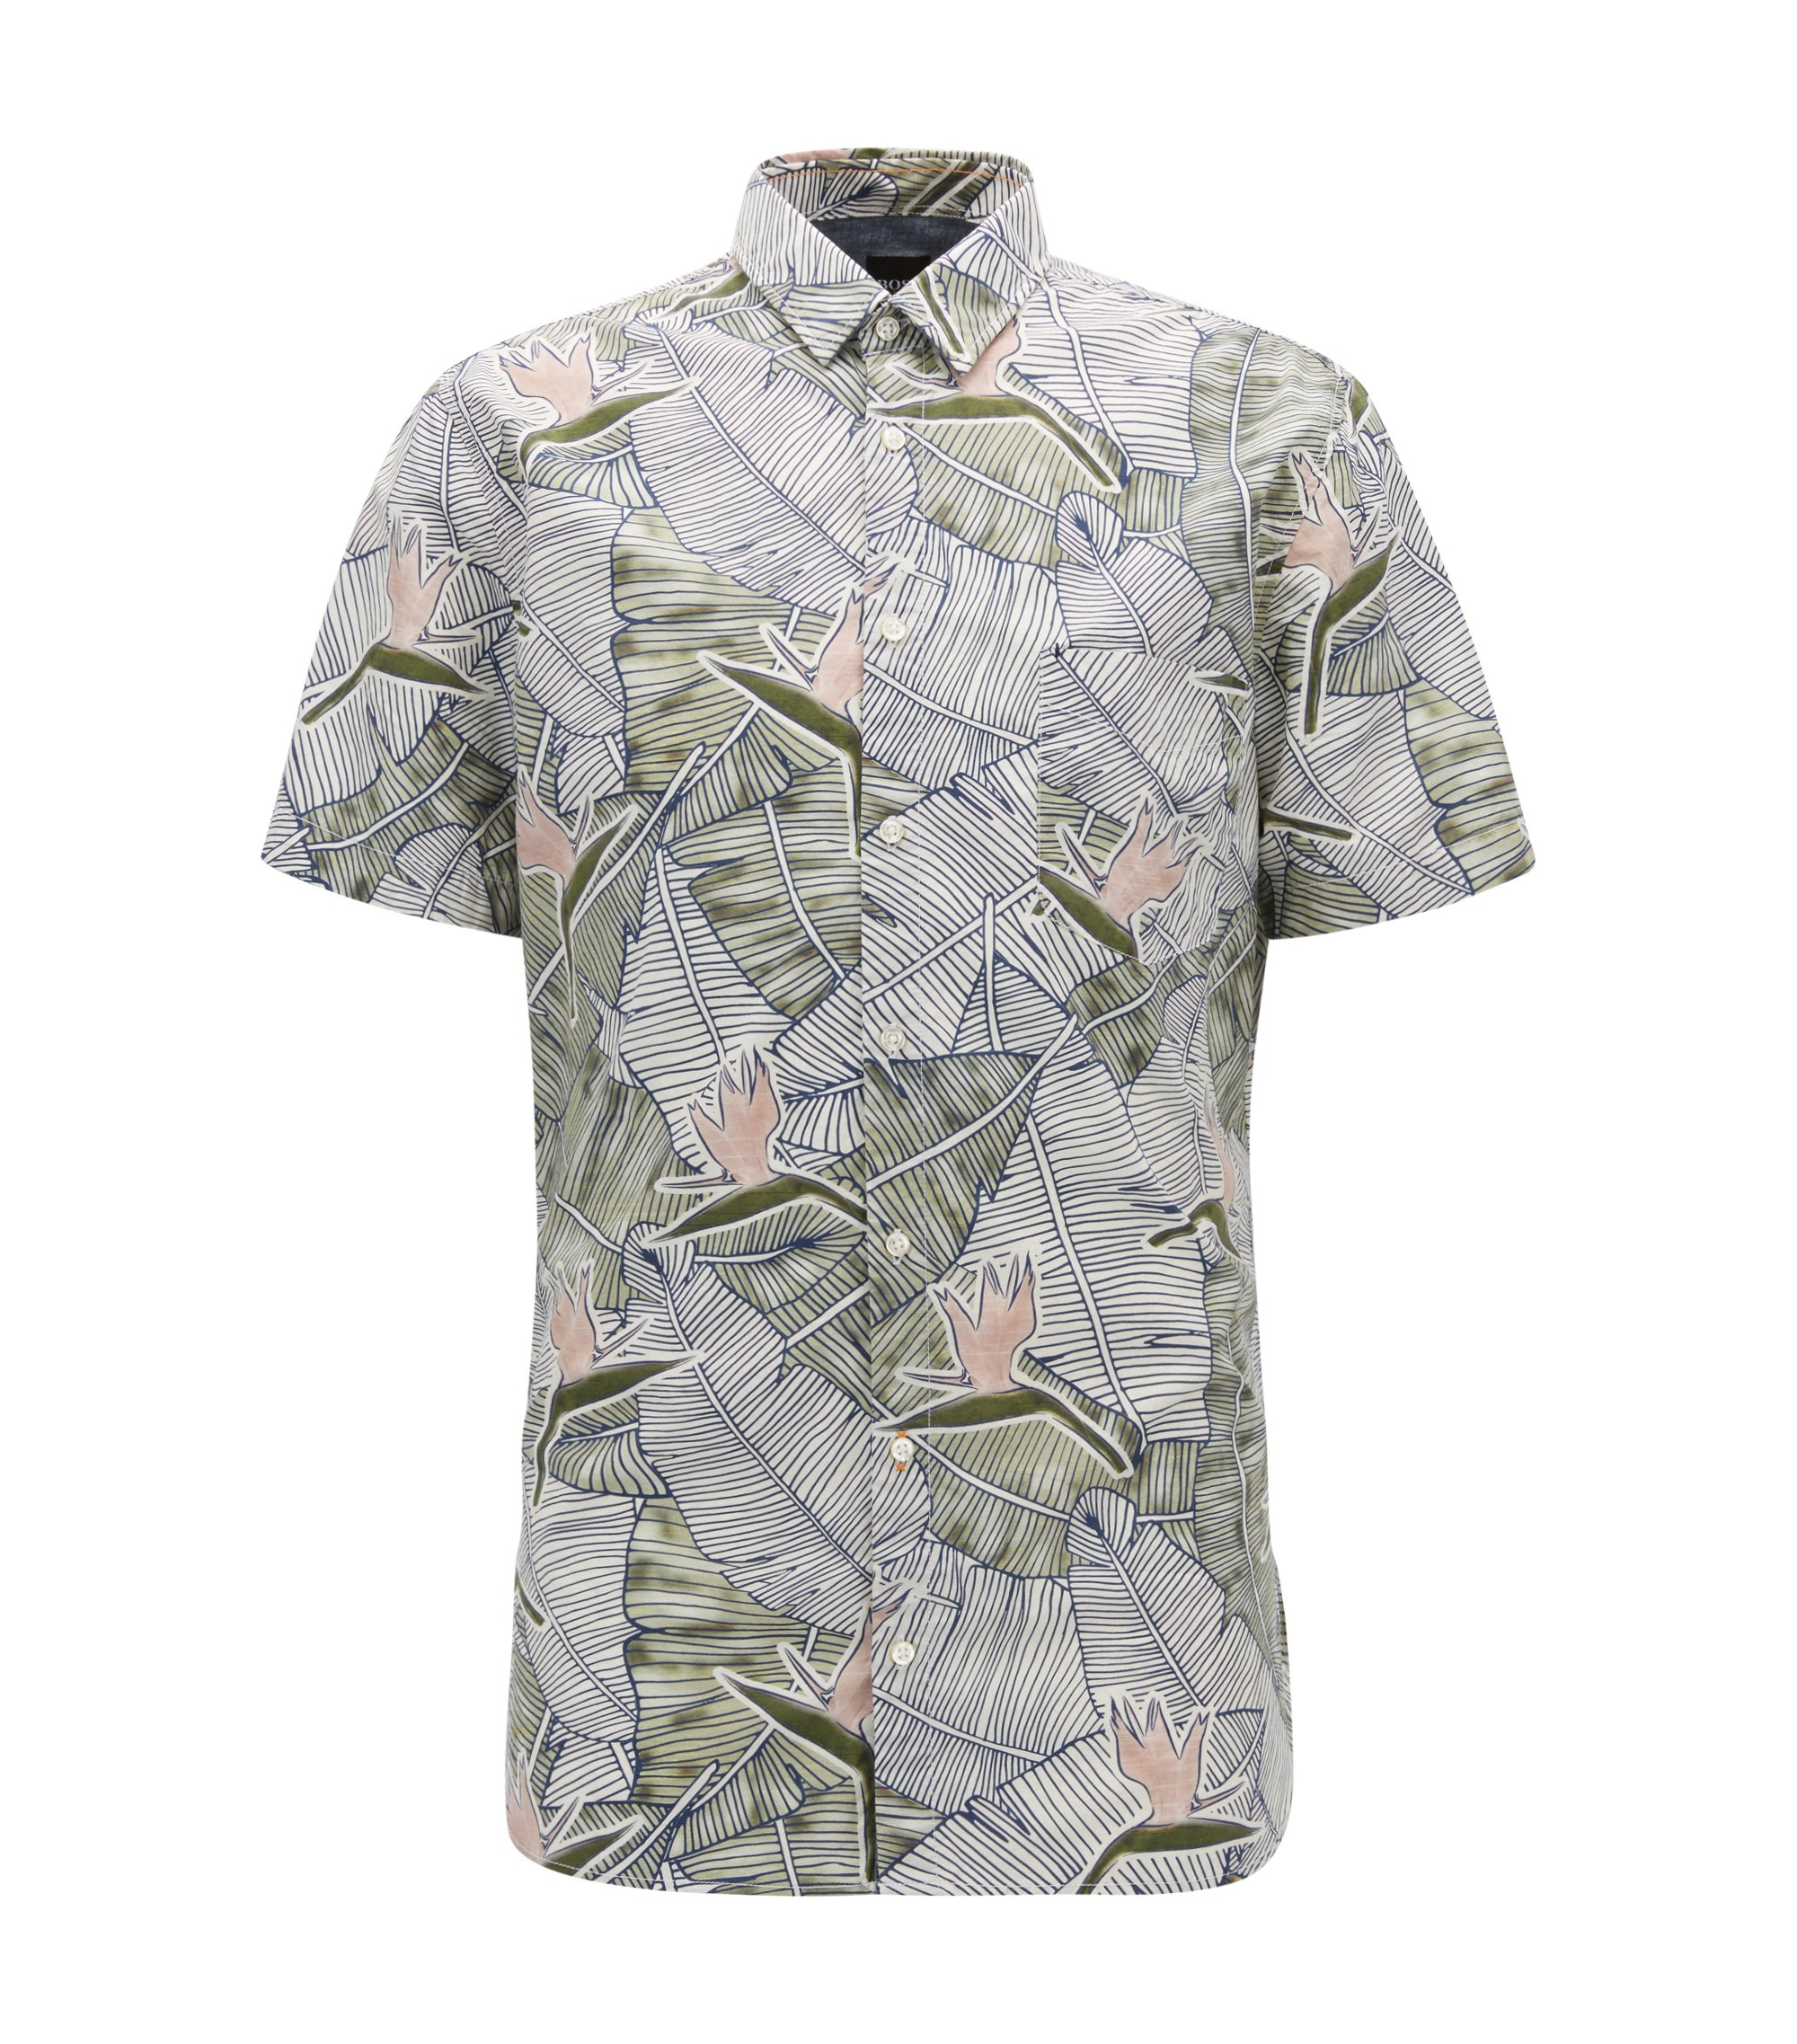 Tropical-Print Cotton Sport Shirt, Slim Fit | Catittude Short , White